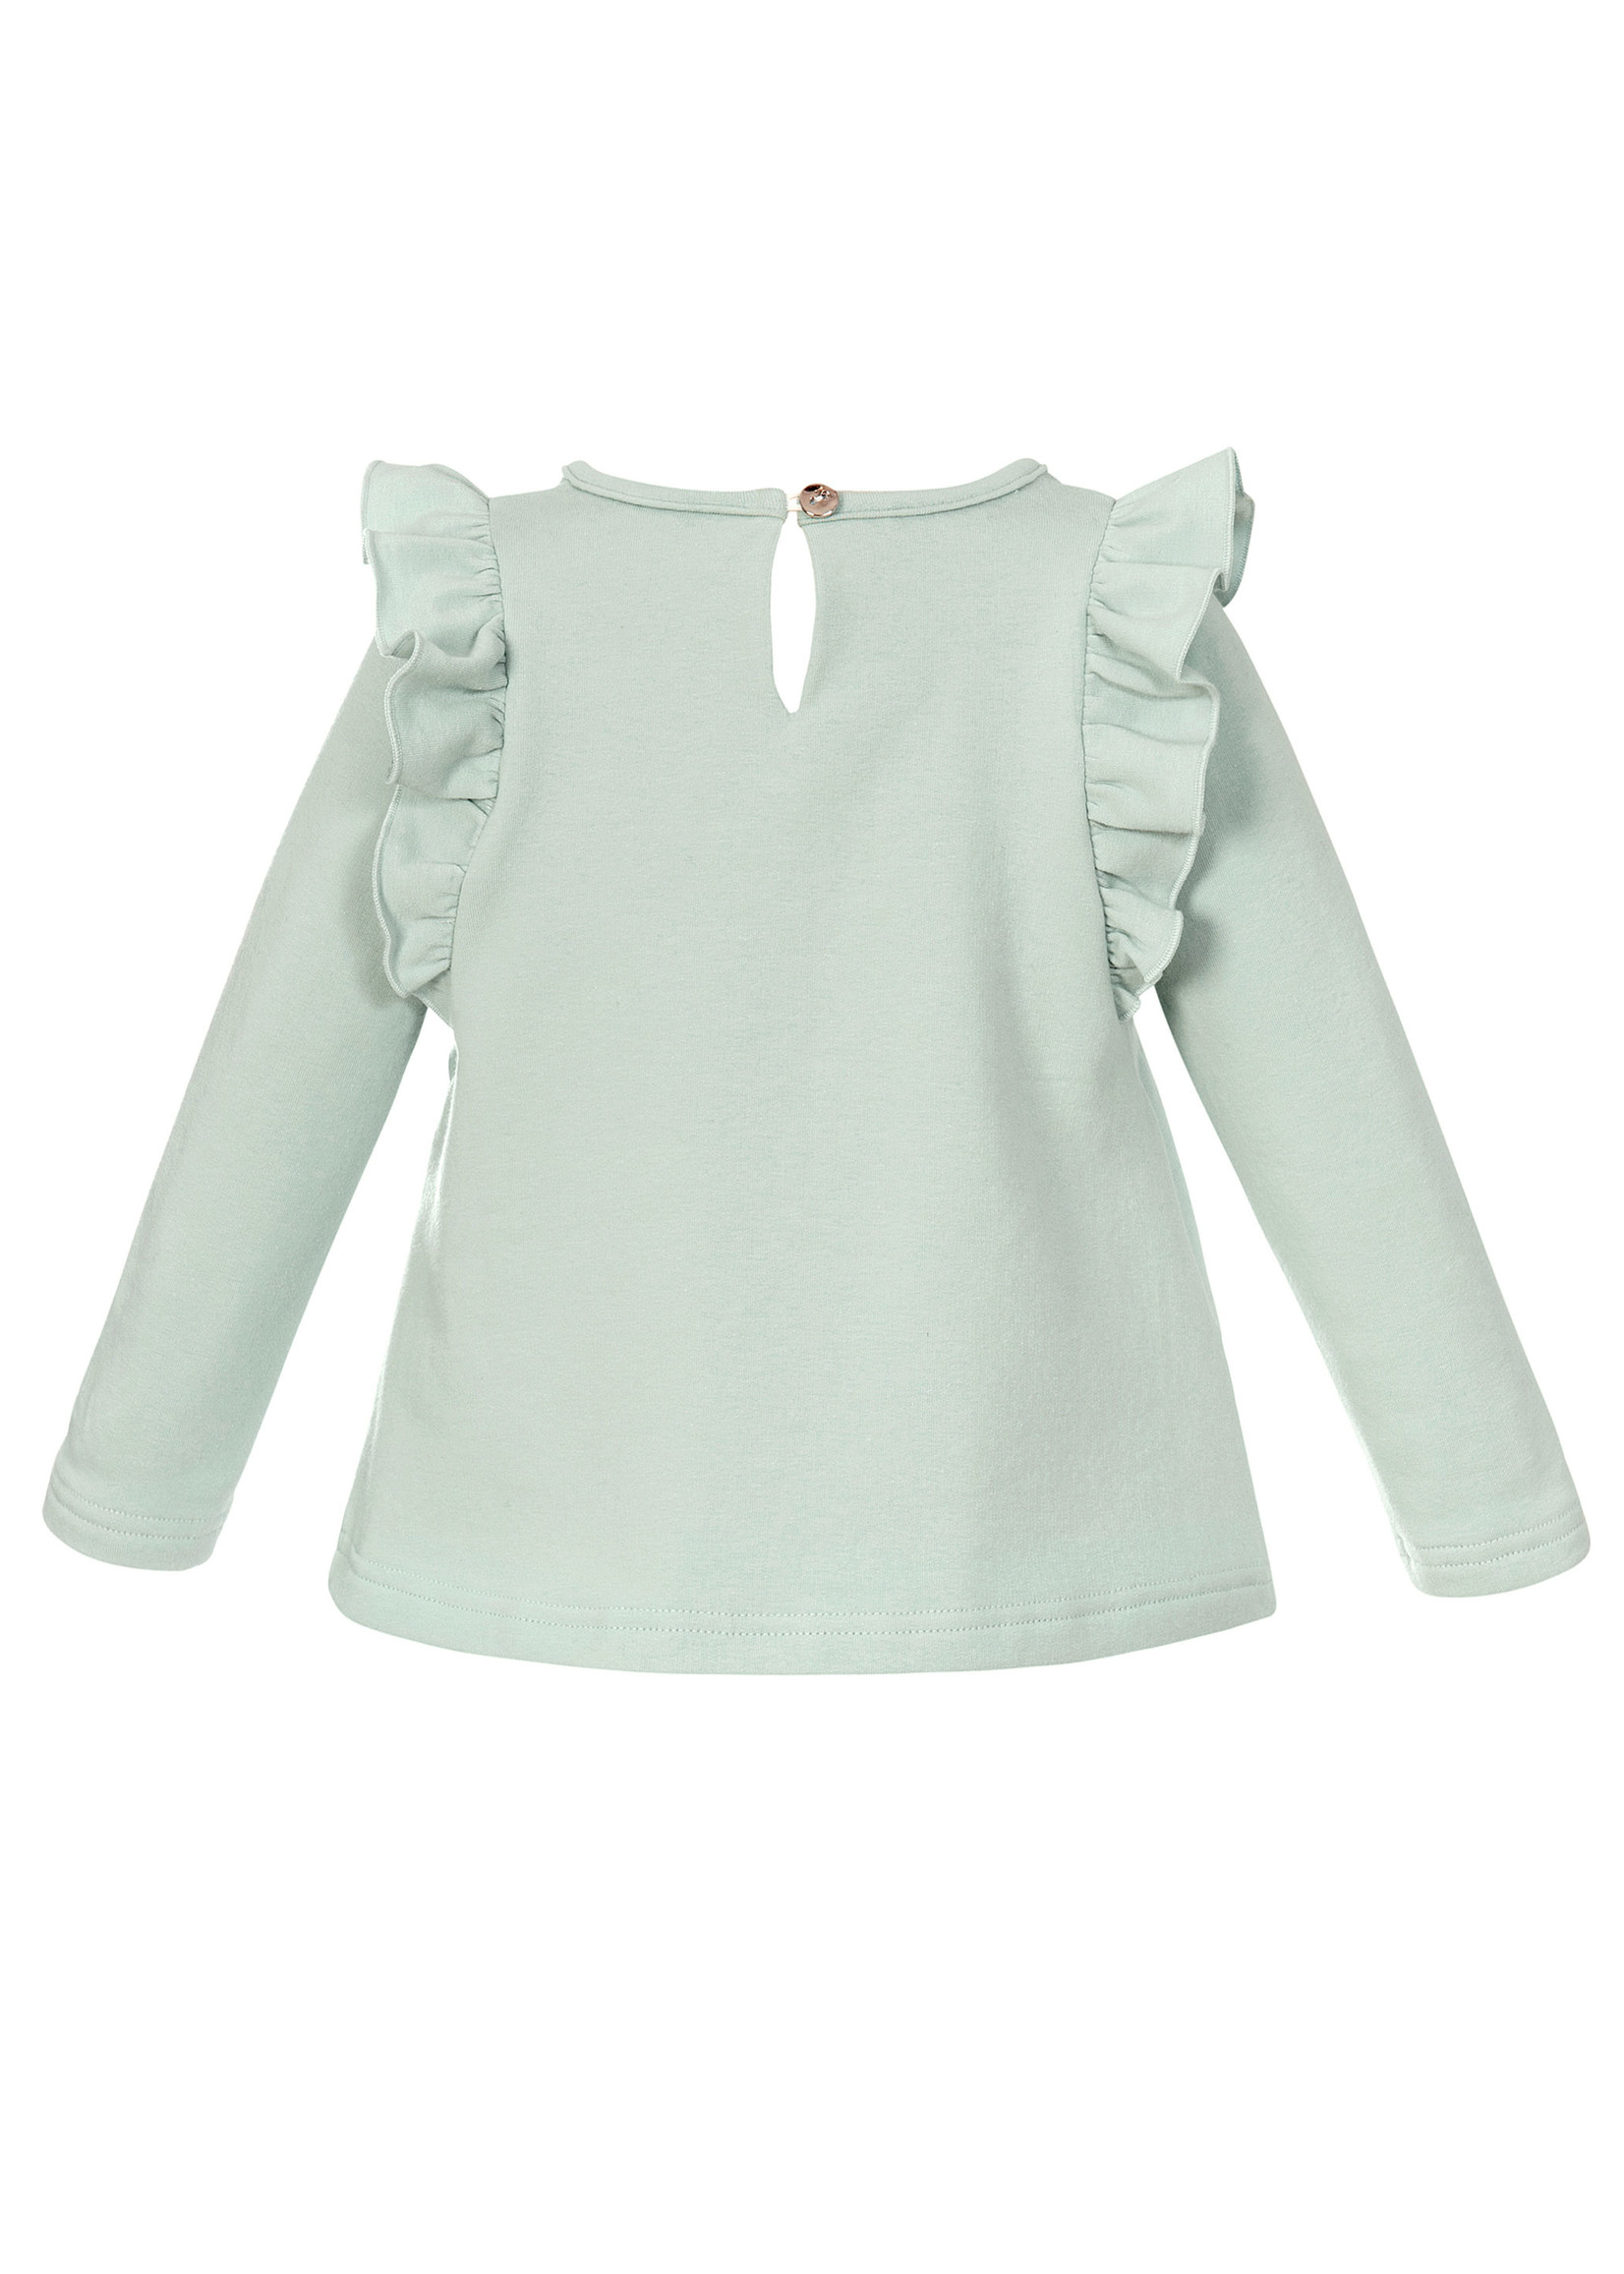 Balloon Chic Balloon Chic so sweet and lovely top groen